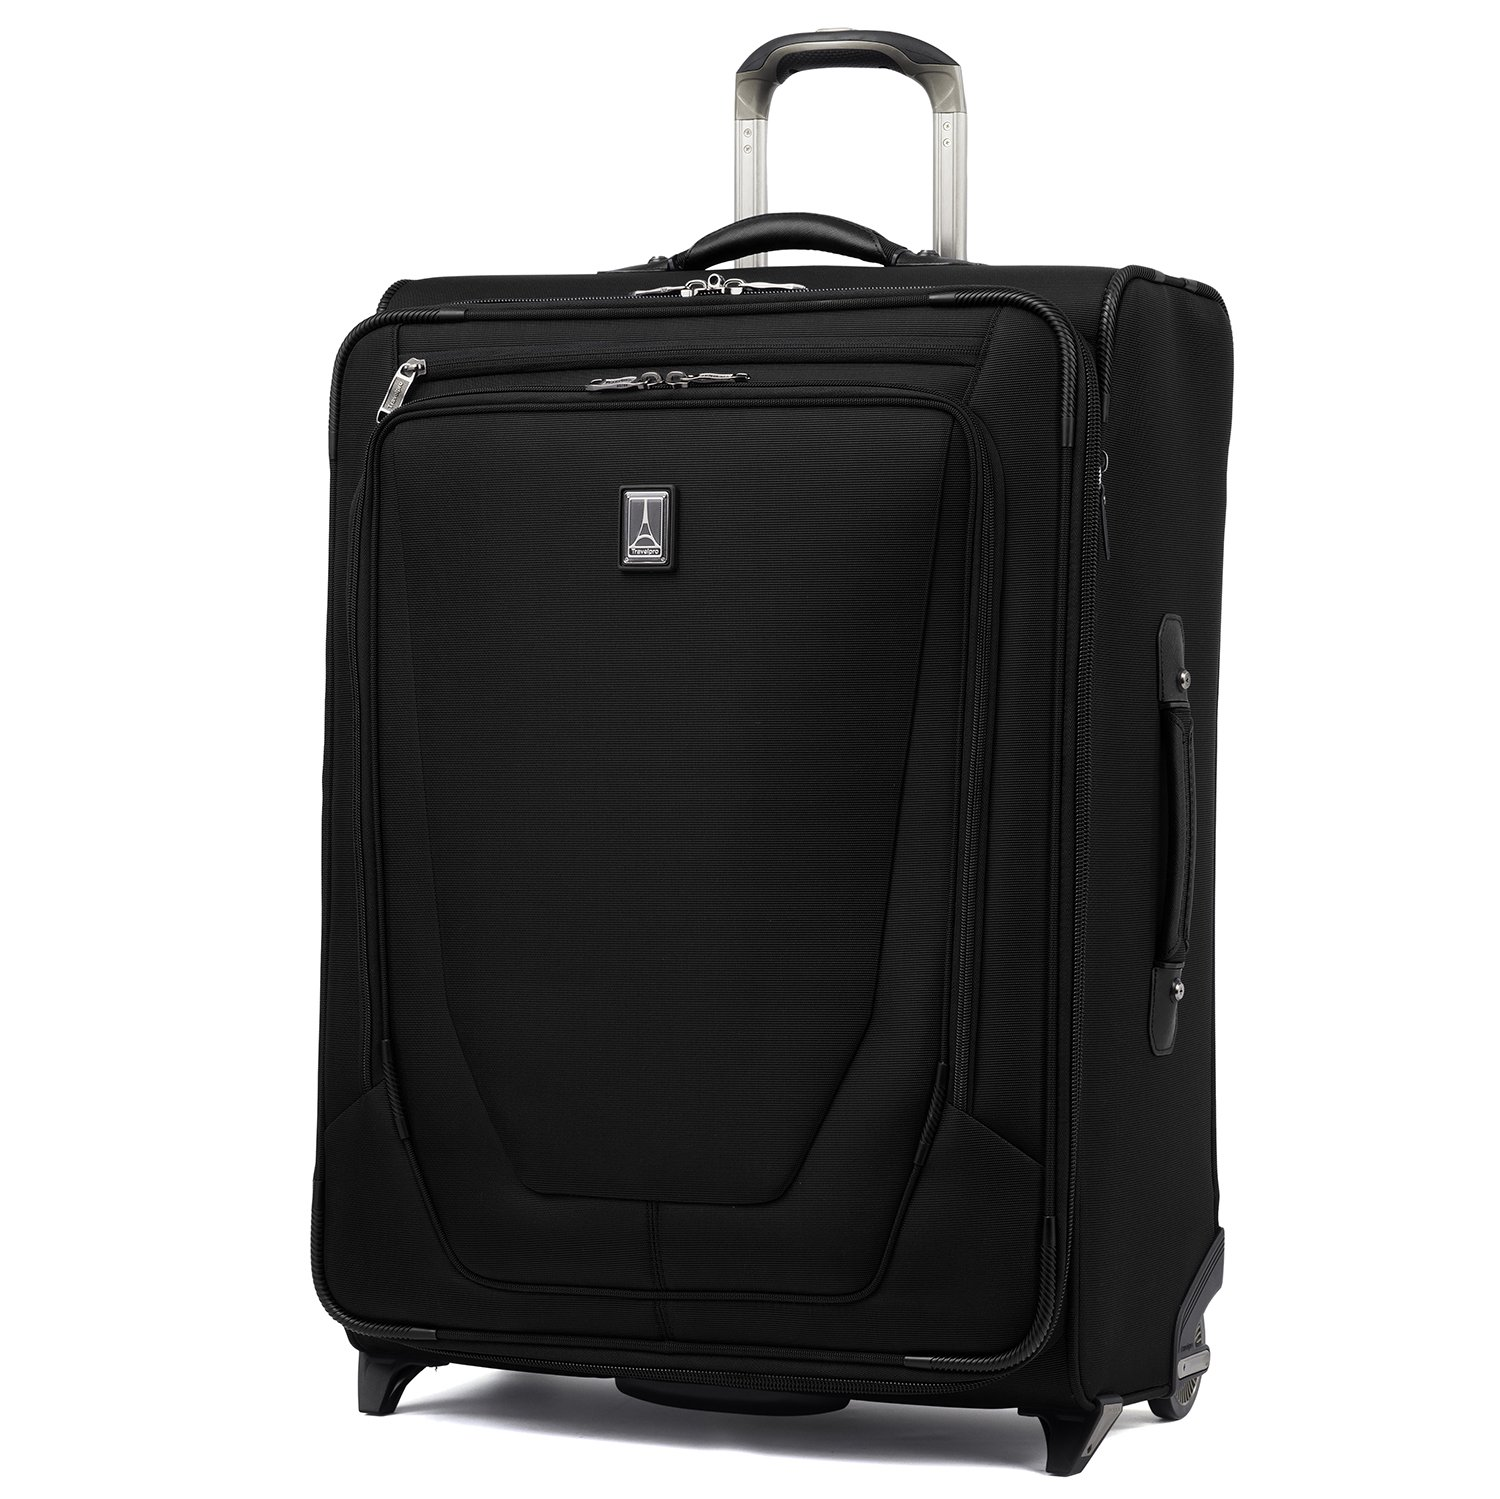 Travelpro Luggage Crew 11 26'' Expandable Rollaboard Suitcase w/Suiter, Black